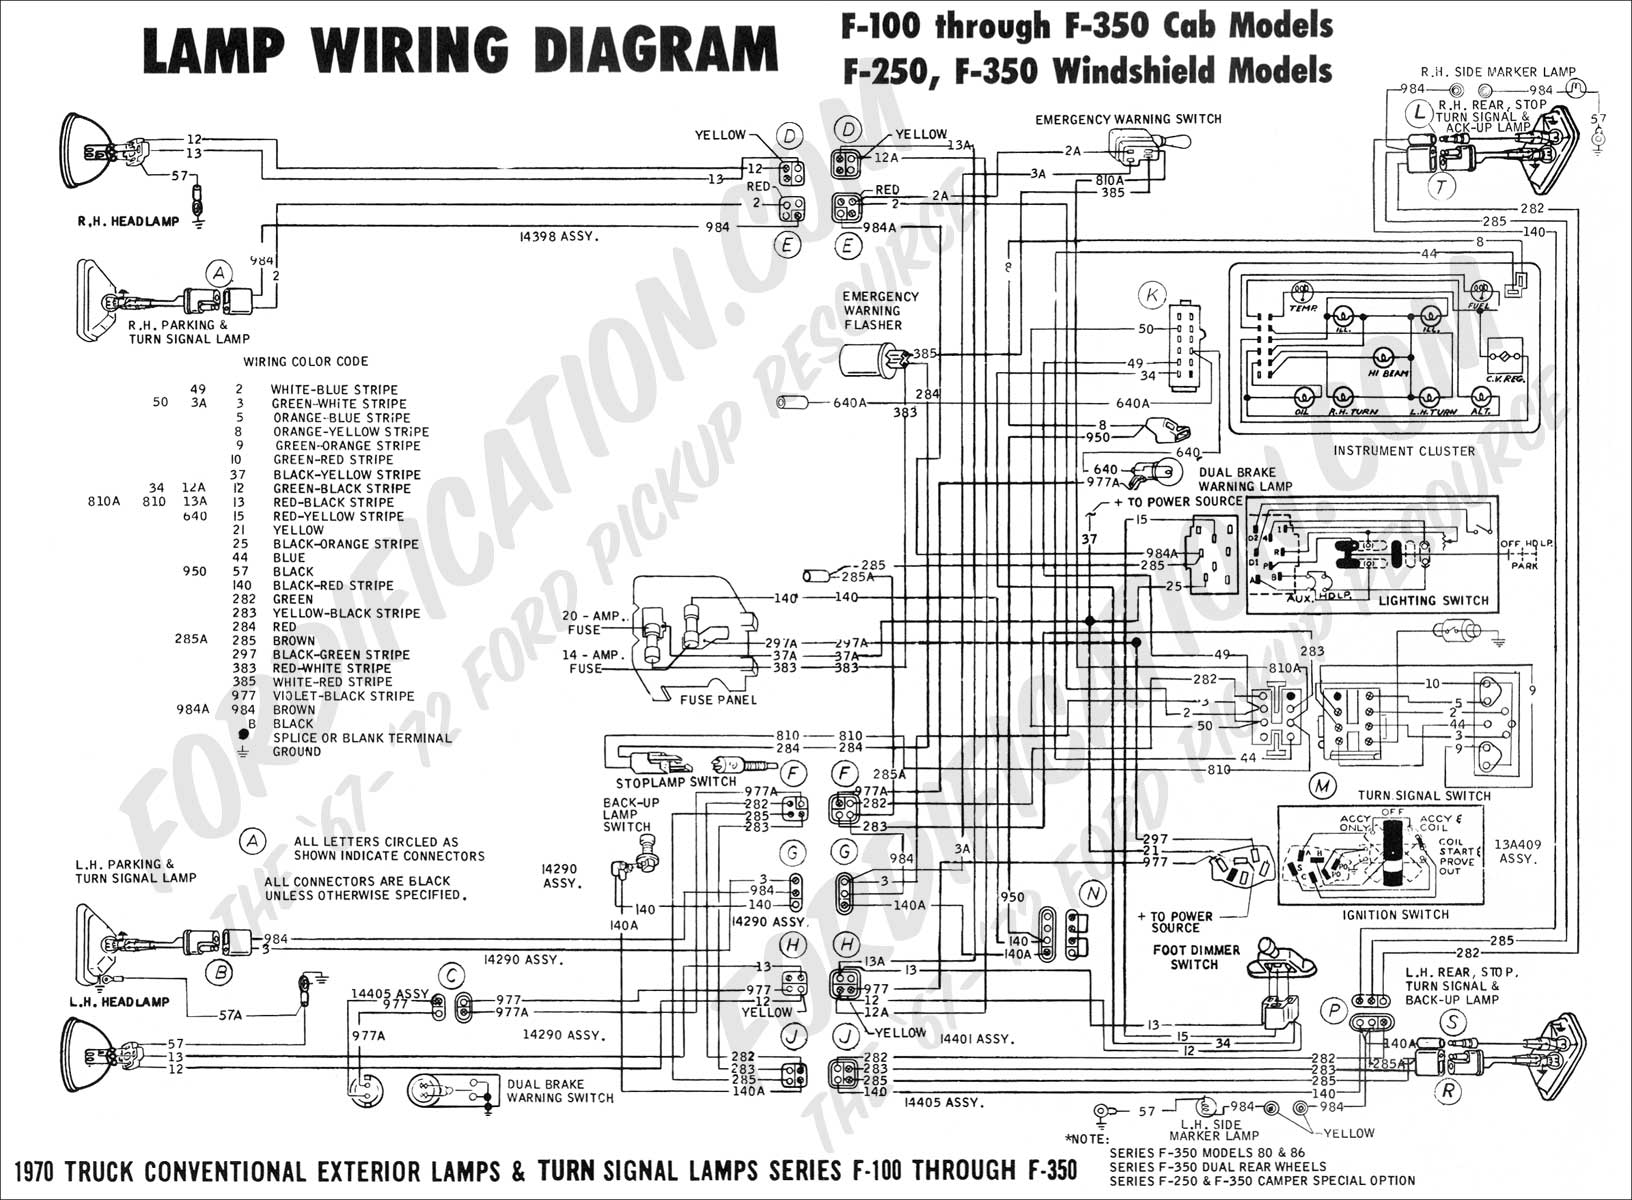 2005 Lx 300 Fuse Diagram Schematics Wiring Diagrams 2010 Chrysler Town Amp Country Box F250 Ford For You All U2022 Rh Onlinetuner Co Logitech Dimensions